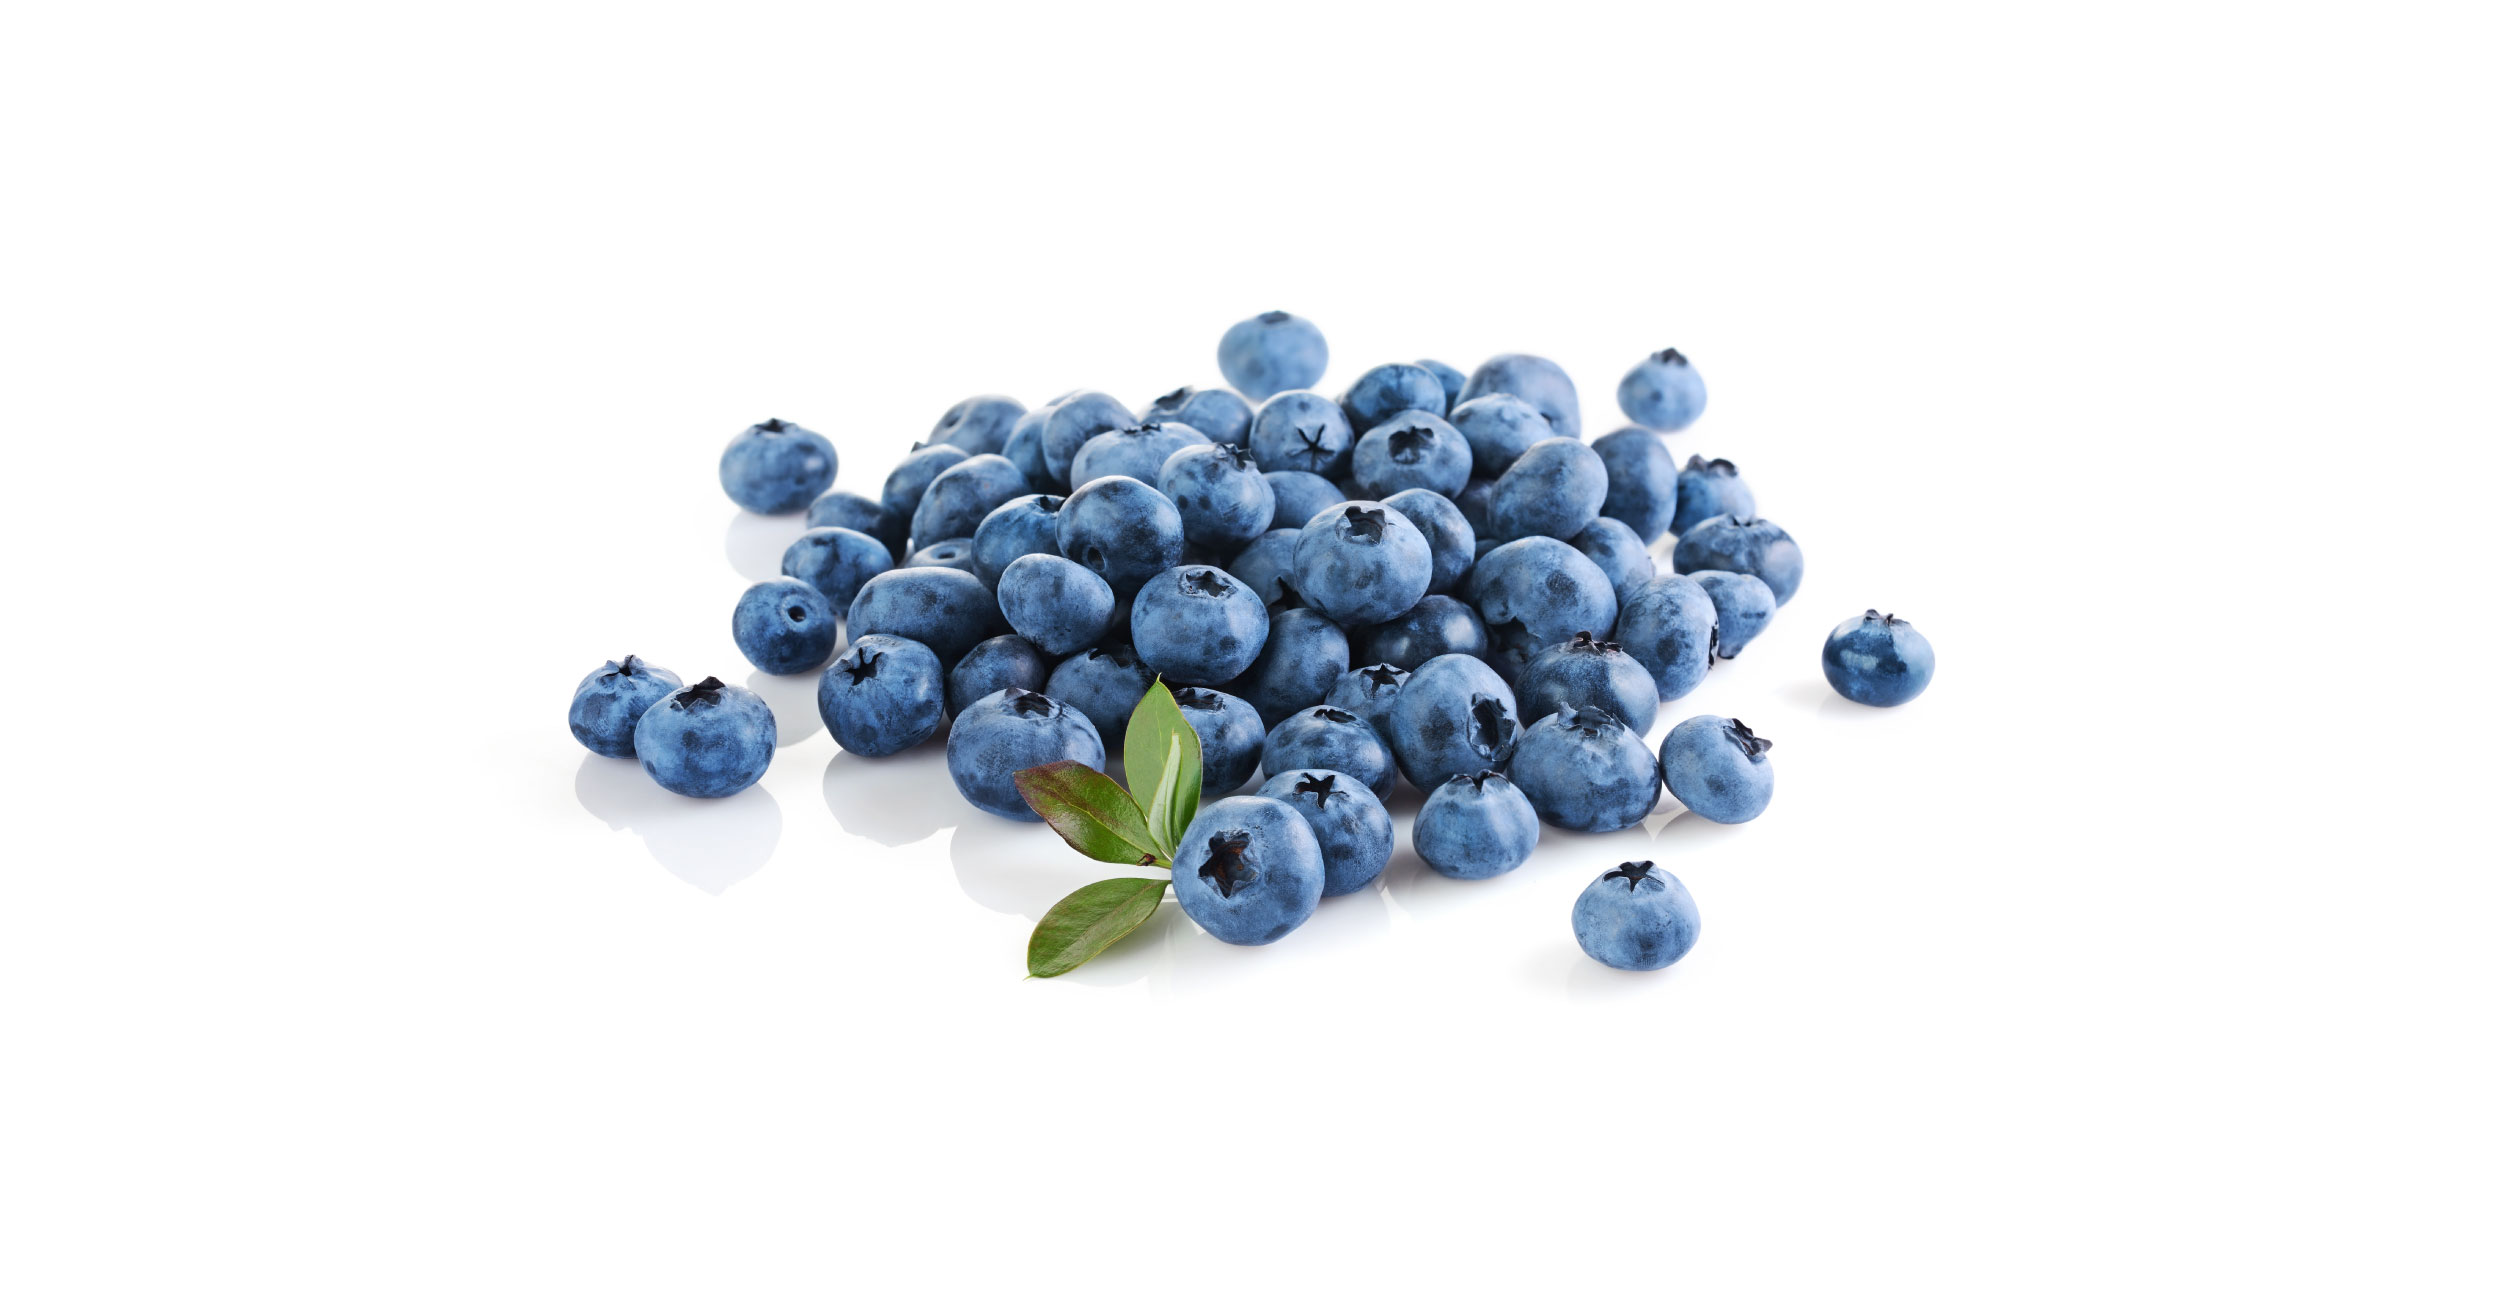 Blueberries are a healthy plant-based superfood. Vegan antioxidants and phytonutrients.